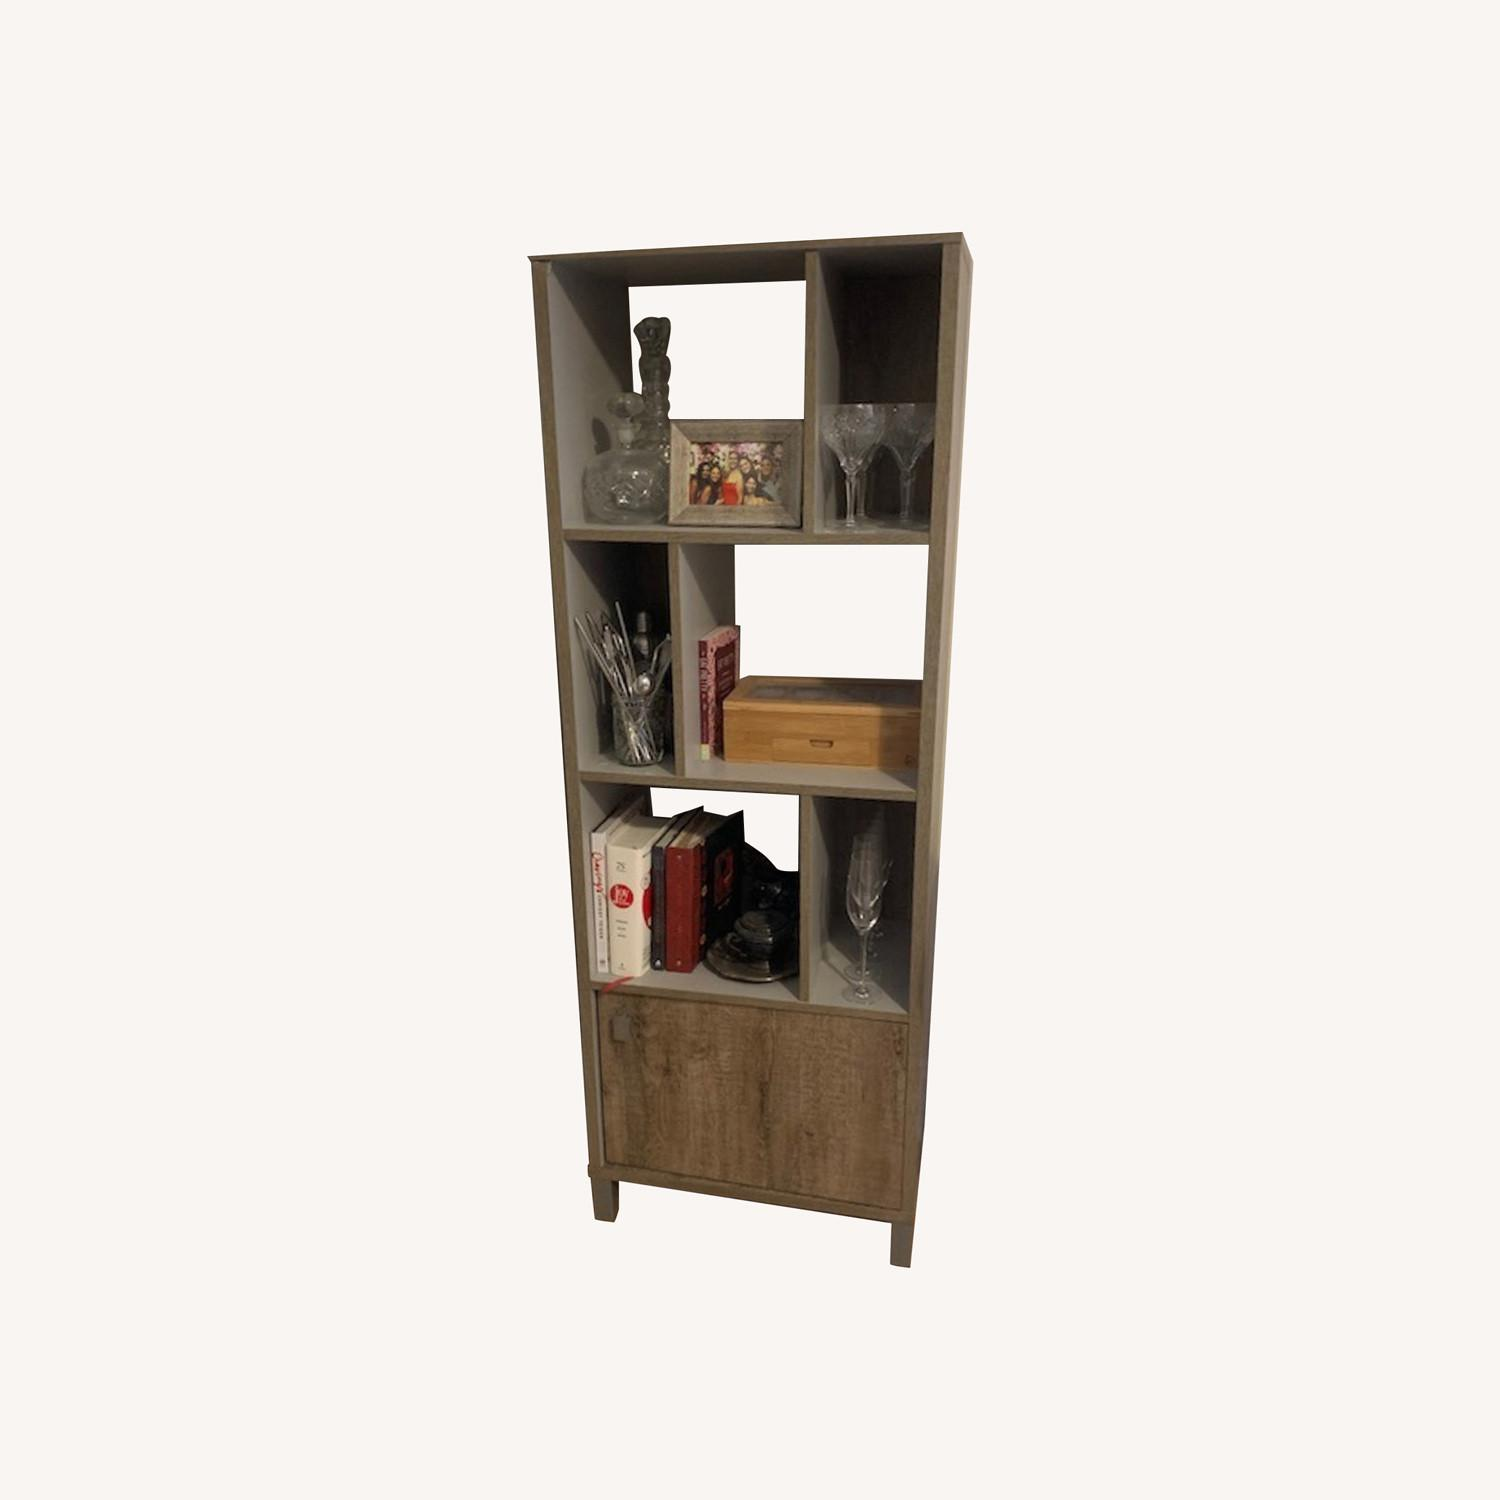 South Shore Expoz 6-Cube Shelving Unit With Door - image-0